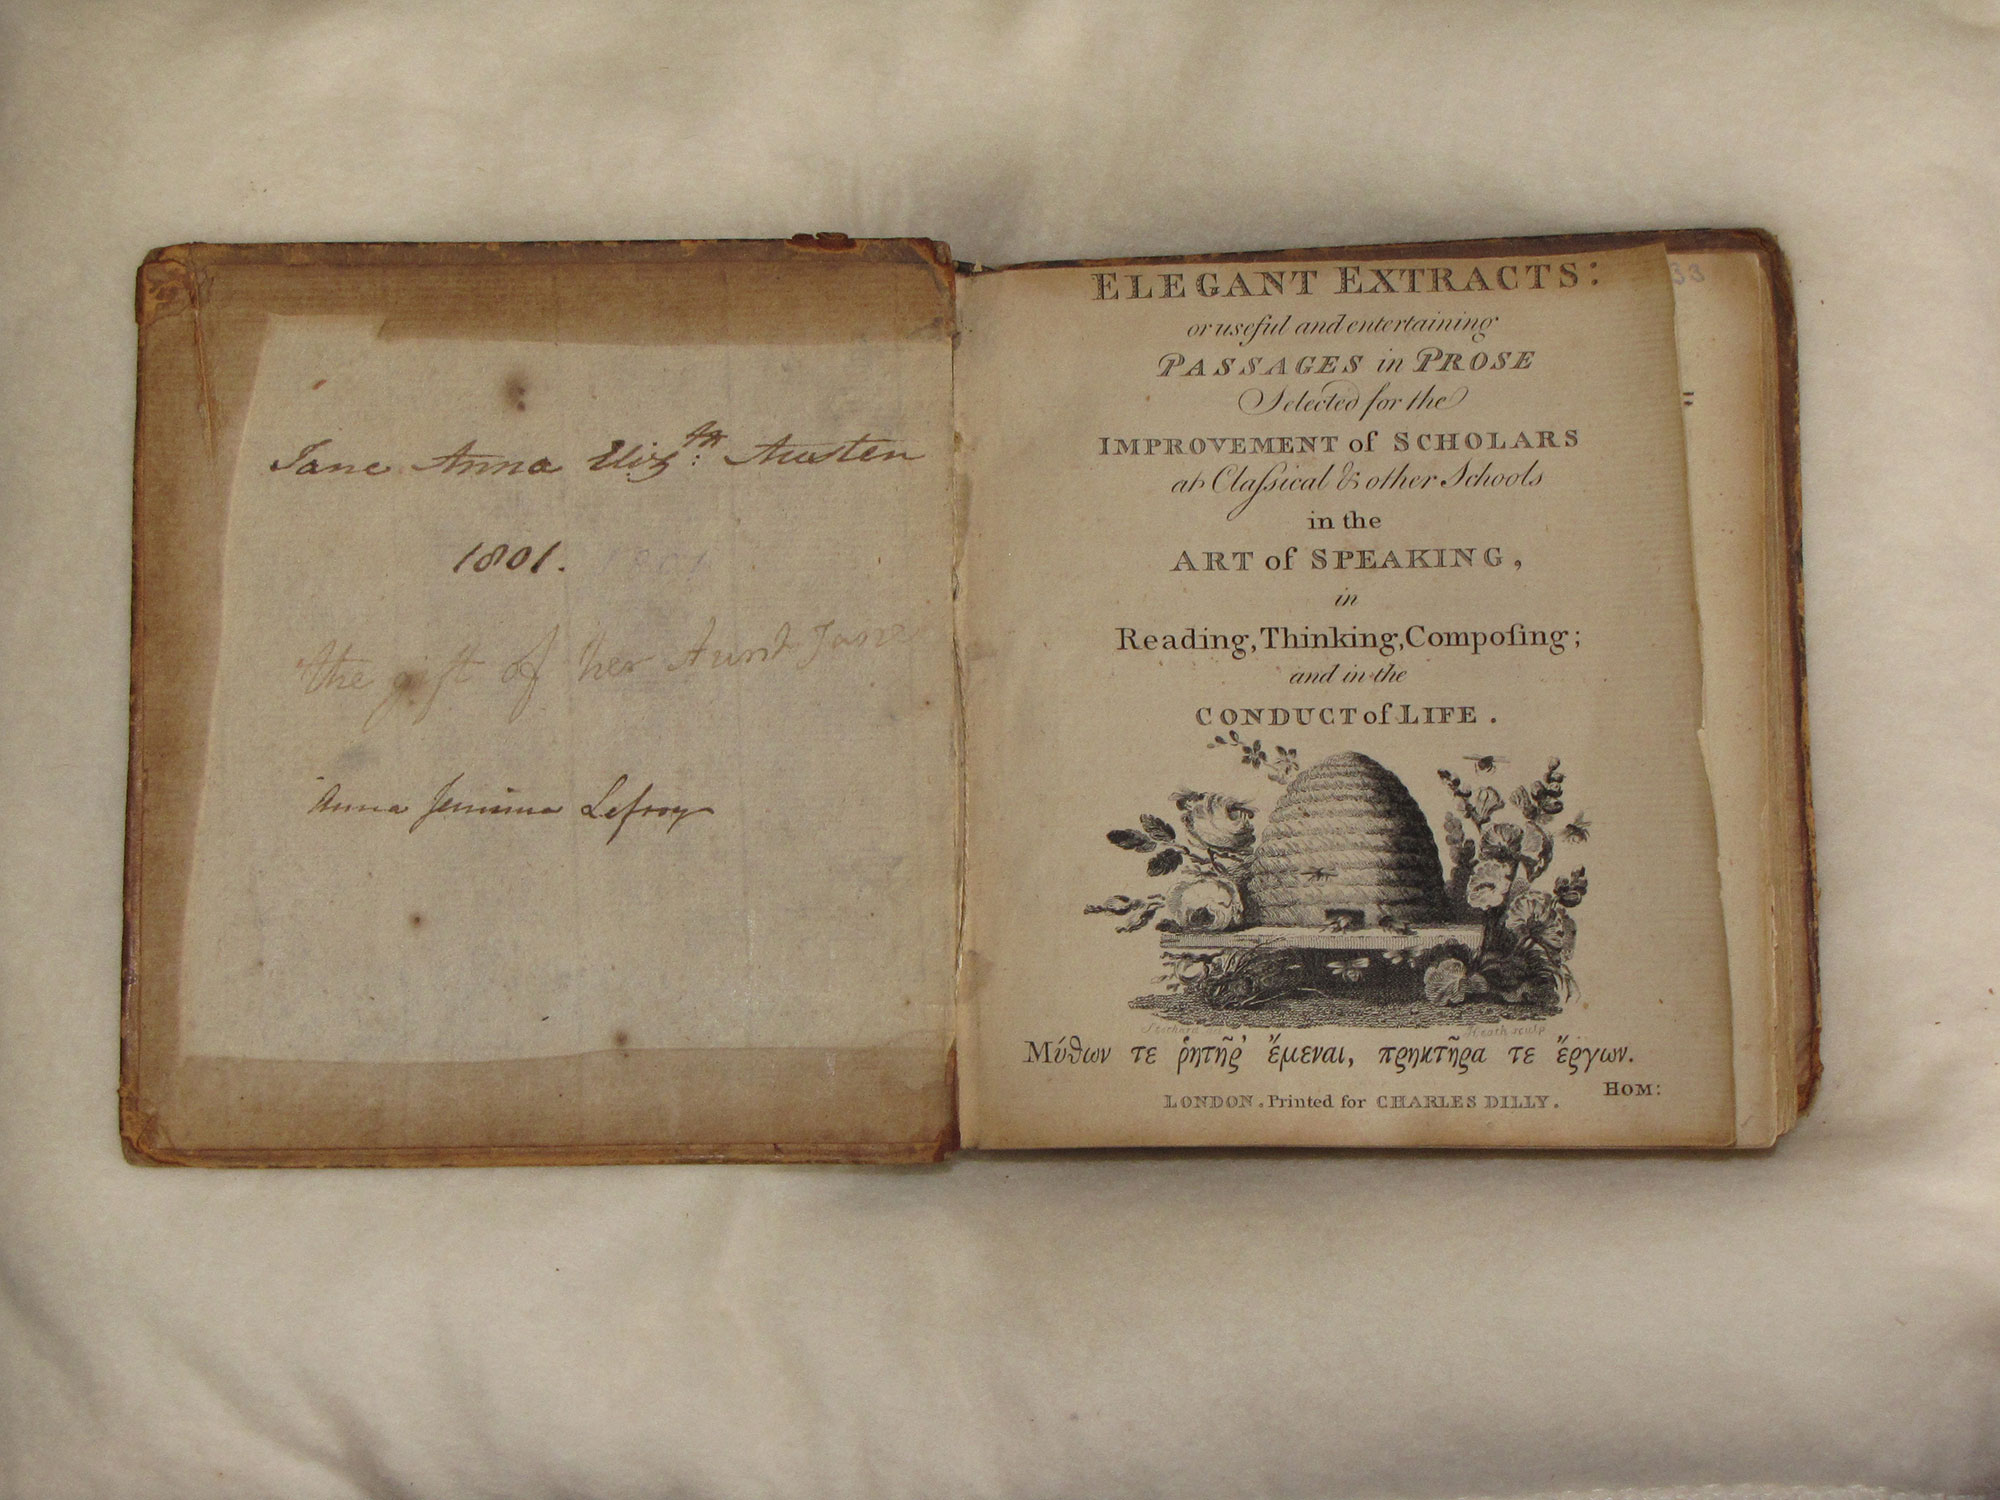 Copy of Elegant Extracts given by Jane Austen to her niece